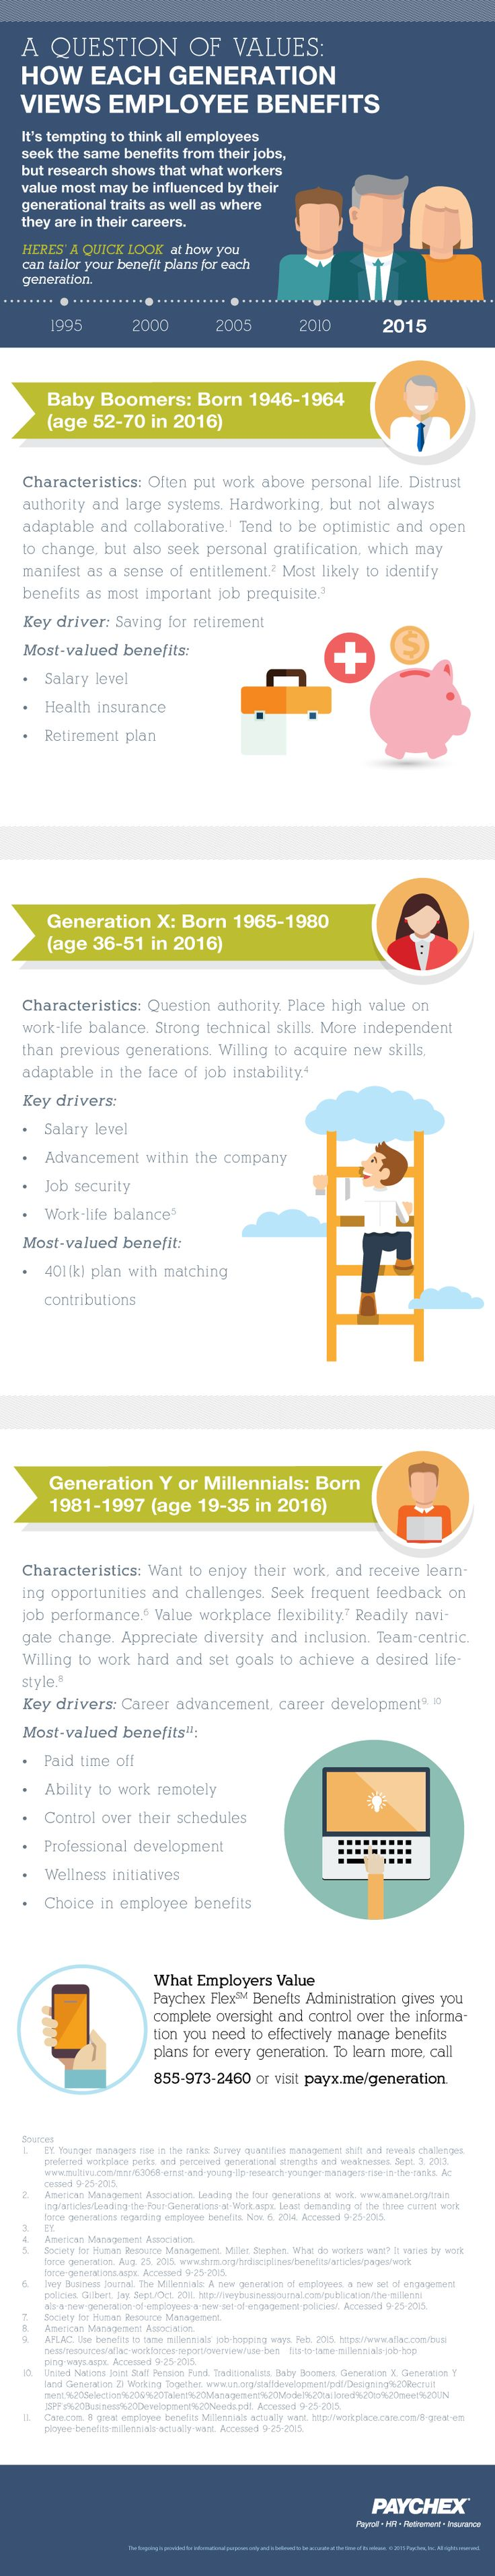 best ideas about employee benefit earn money baby boomers gen xers and millennials work together to make your company a success but the benefits that attract them to a position and keep them